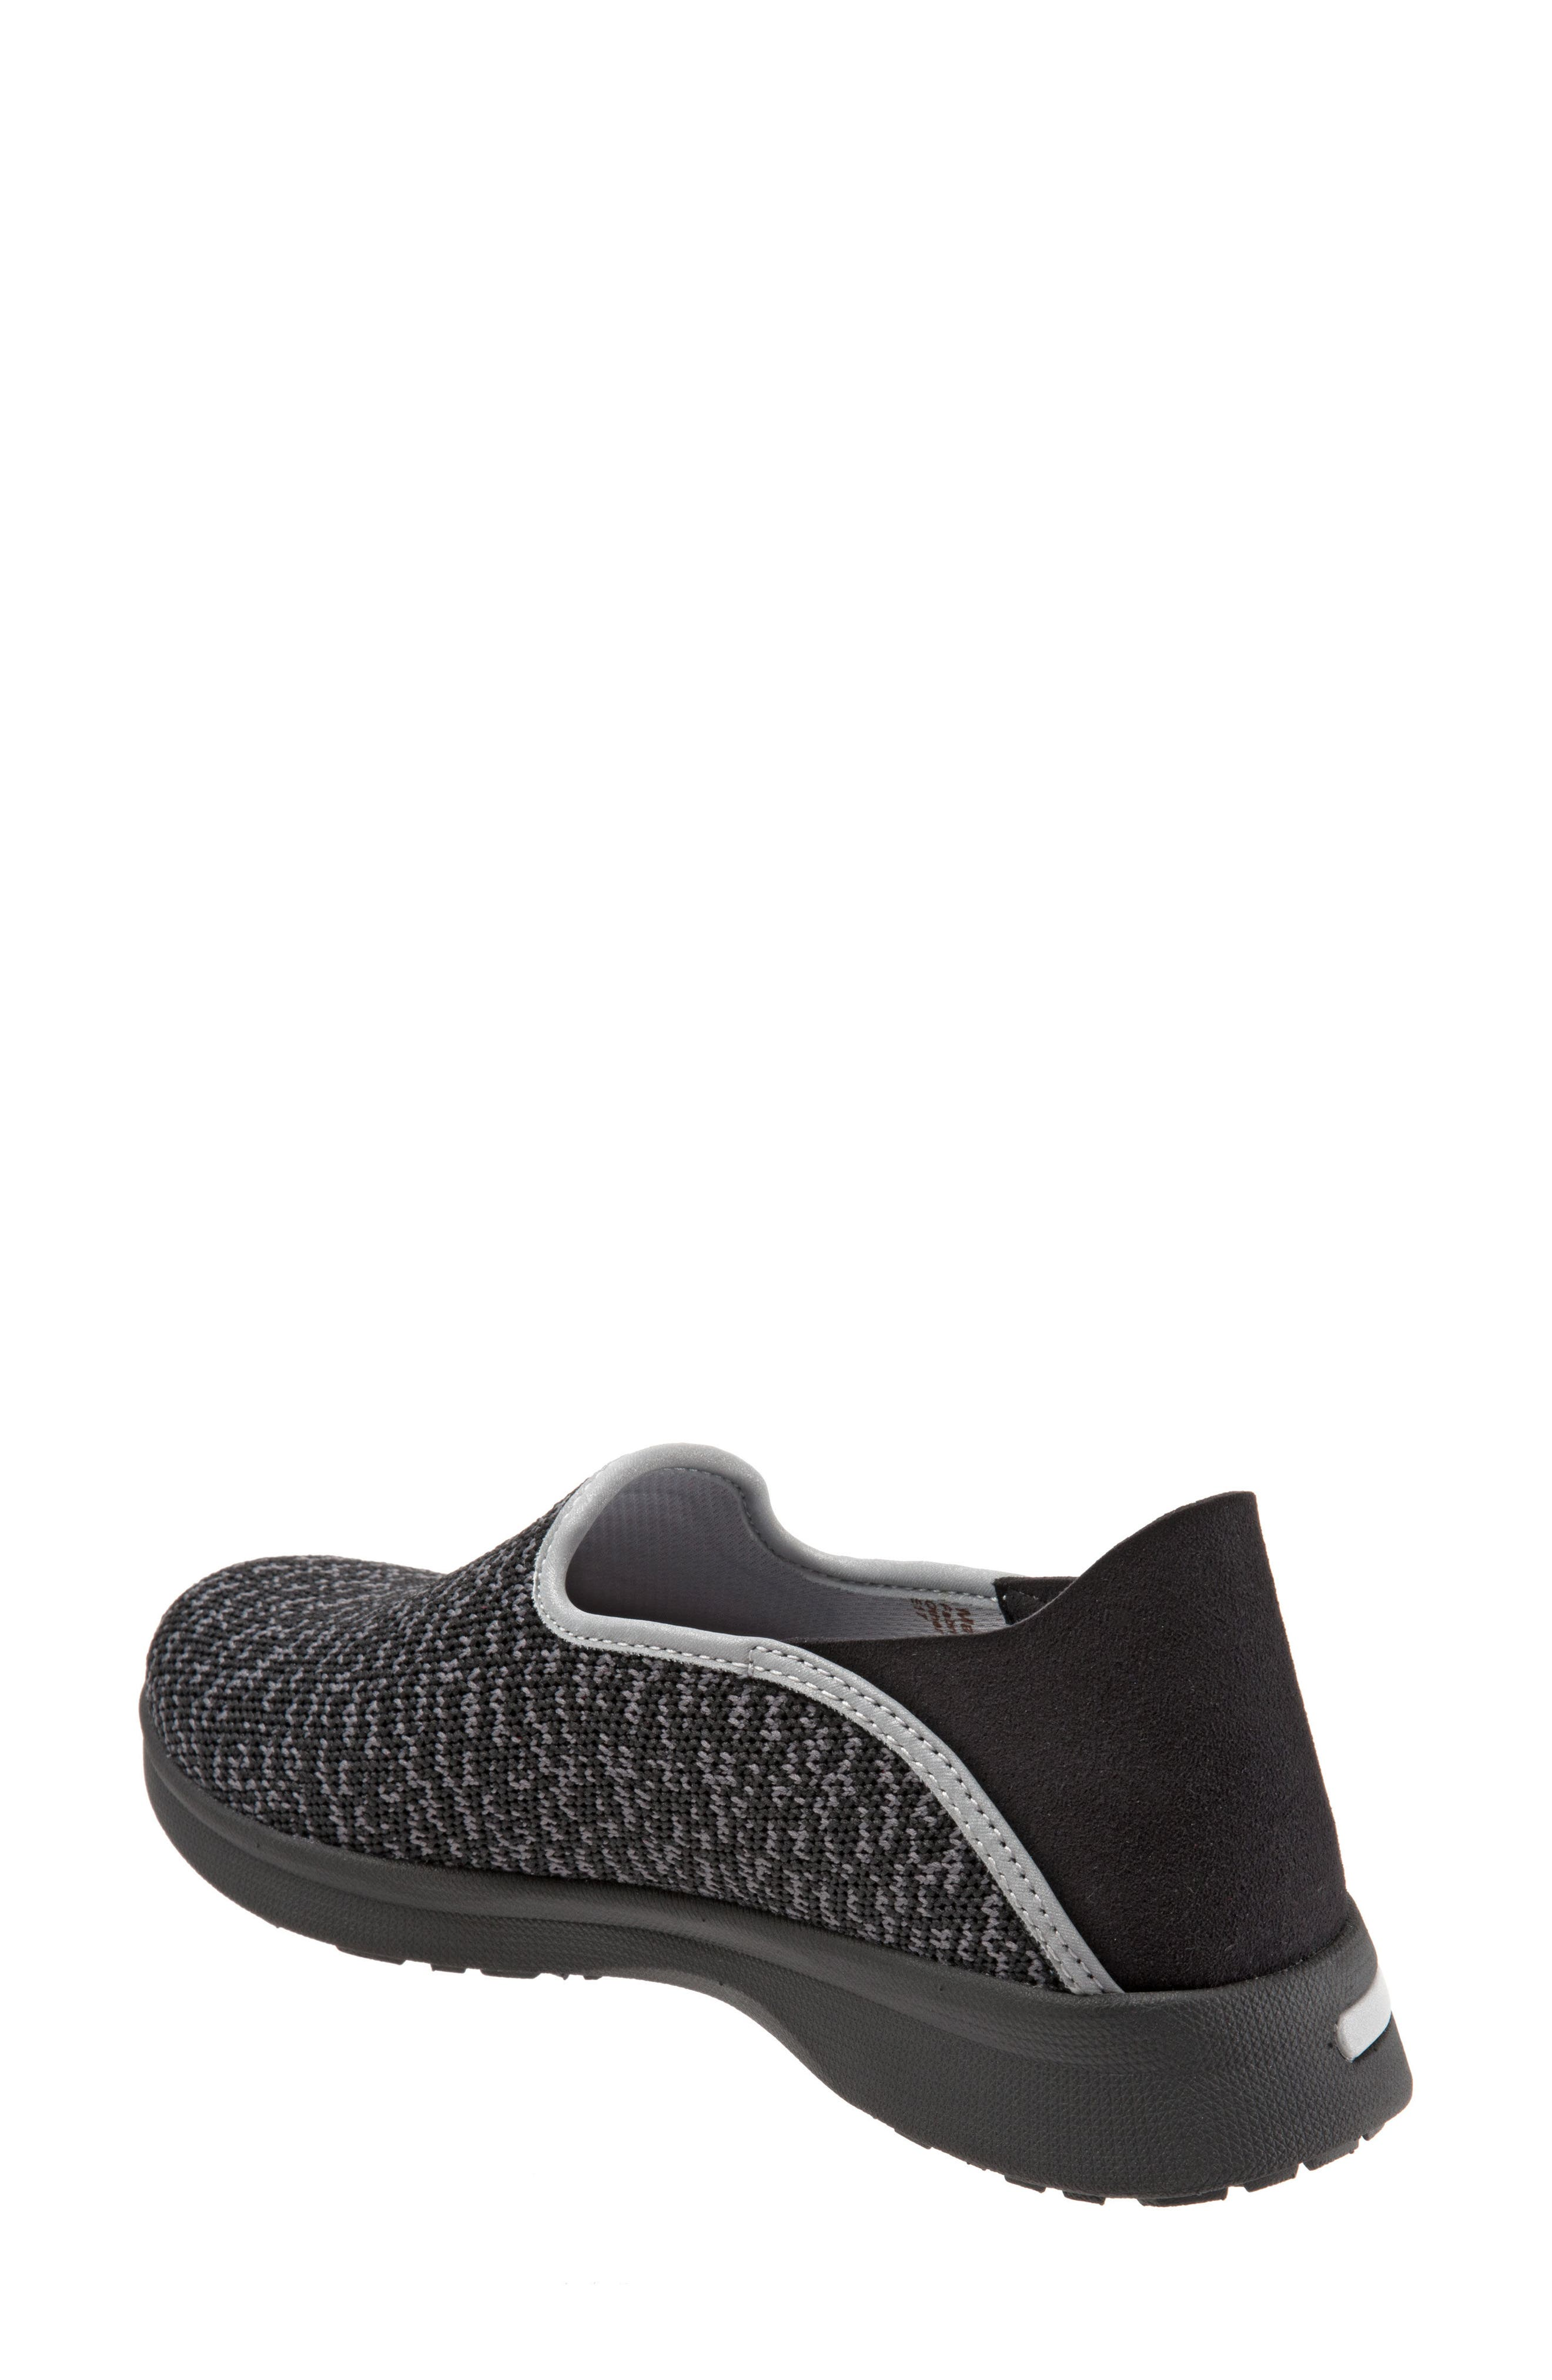 Simba Convertible Slip-On,                             Alternate thumbnail 3, color,                             BLACK FABRIC